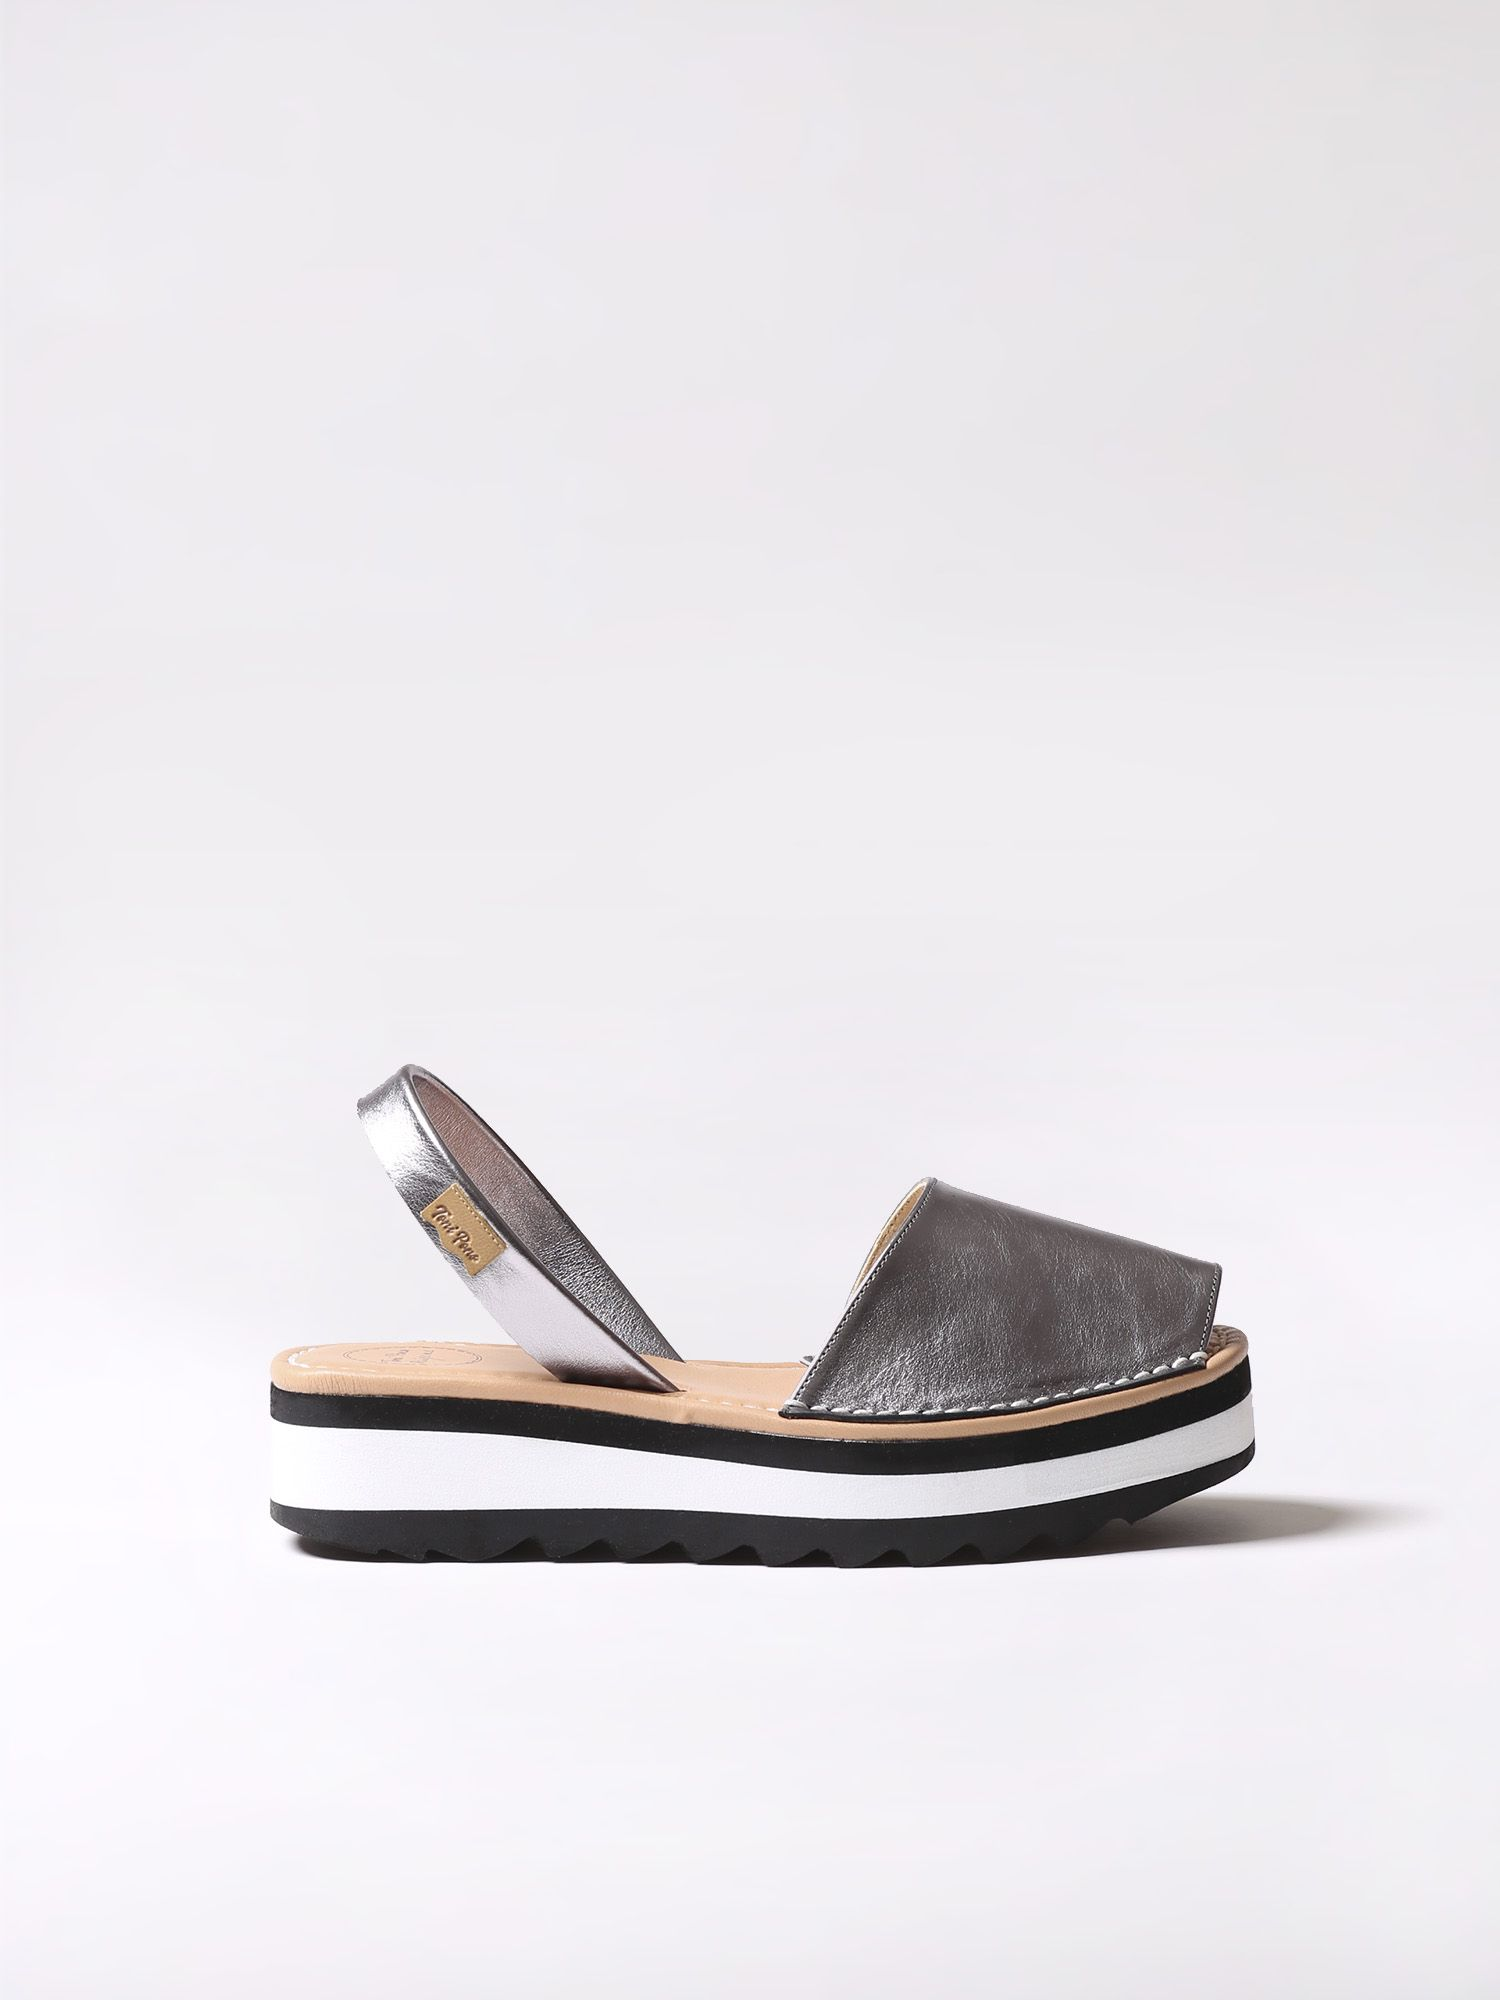 Leather avarca sandal - SOLLER-P